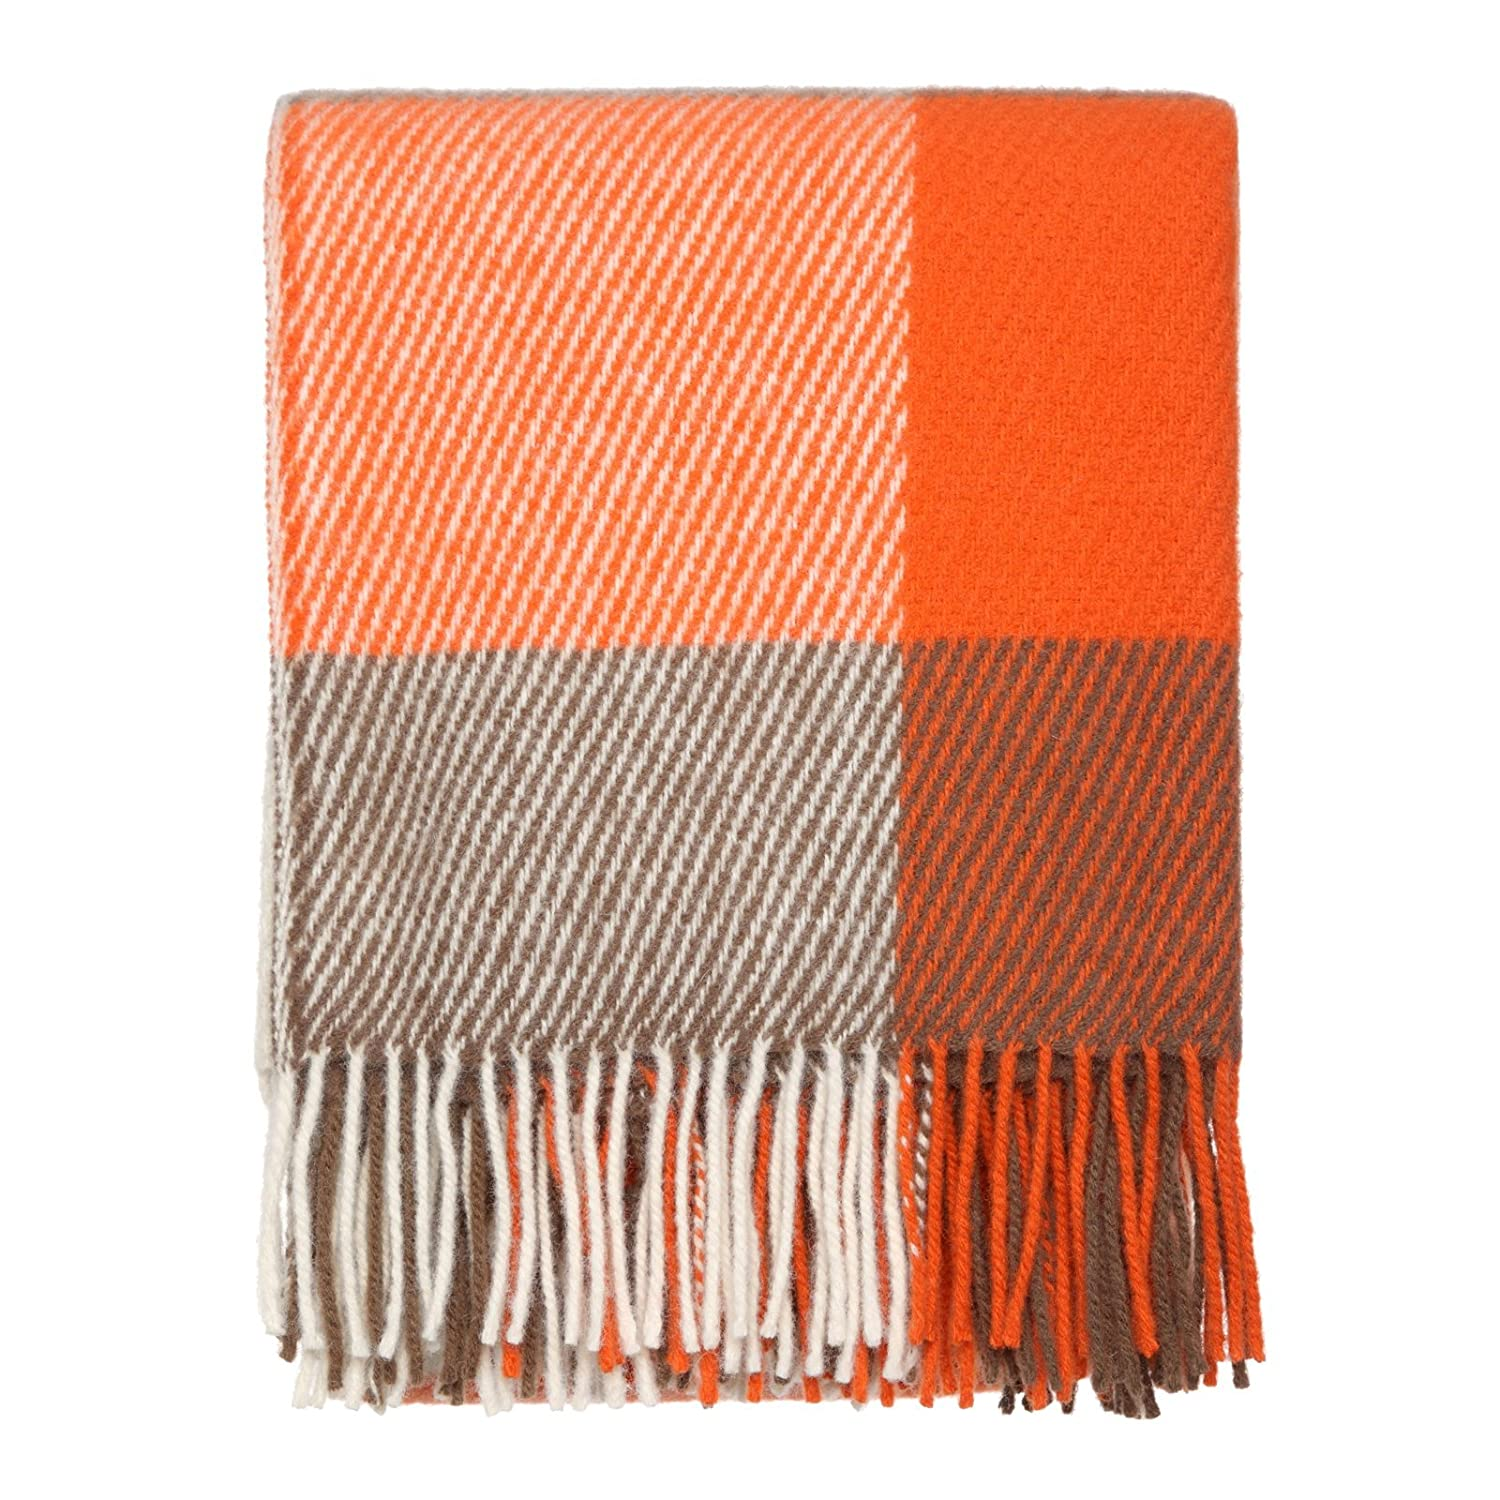 orange check throw   pure new wool amazoncouk kitchen  home -